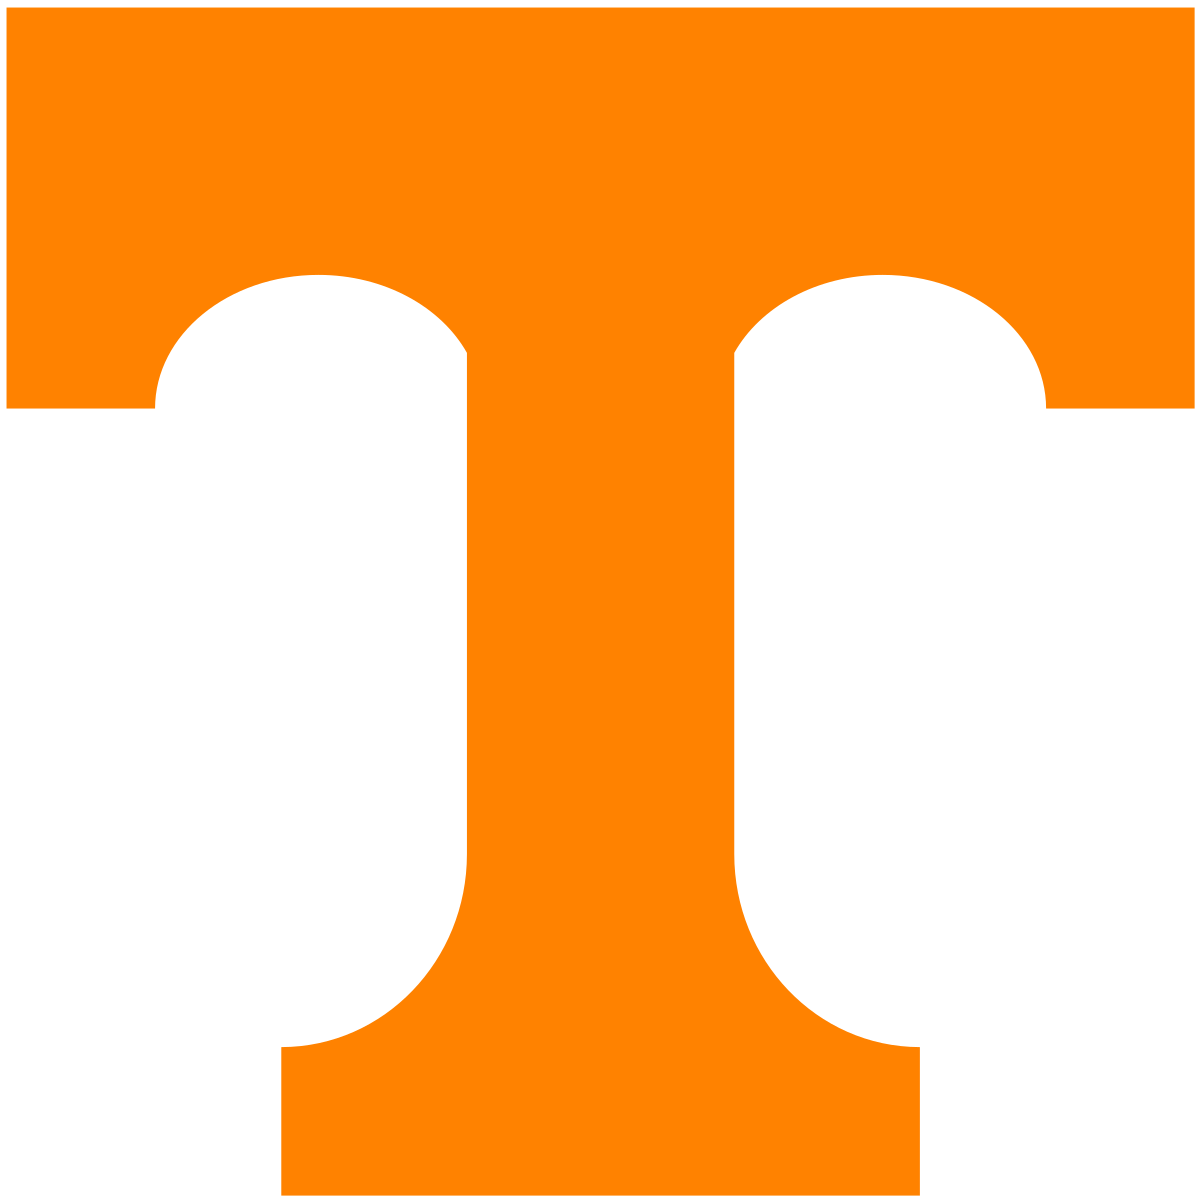 Power t png. University of tennessee logos